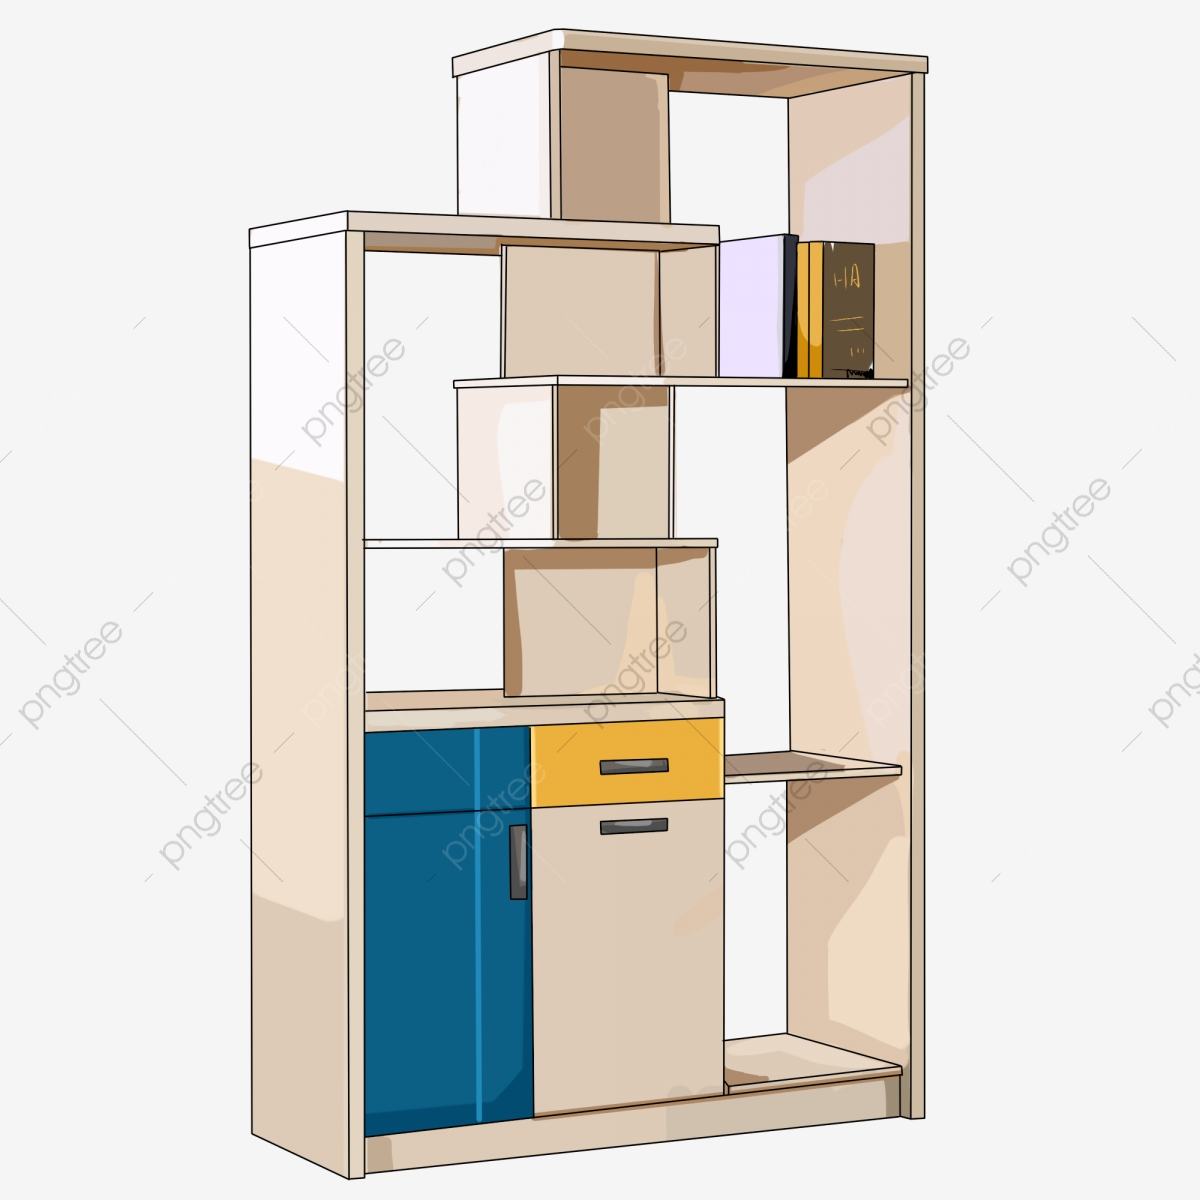 Clean Locker Clean Storage Cabinet Bedroom Furniture Locker